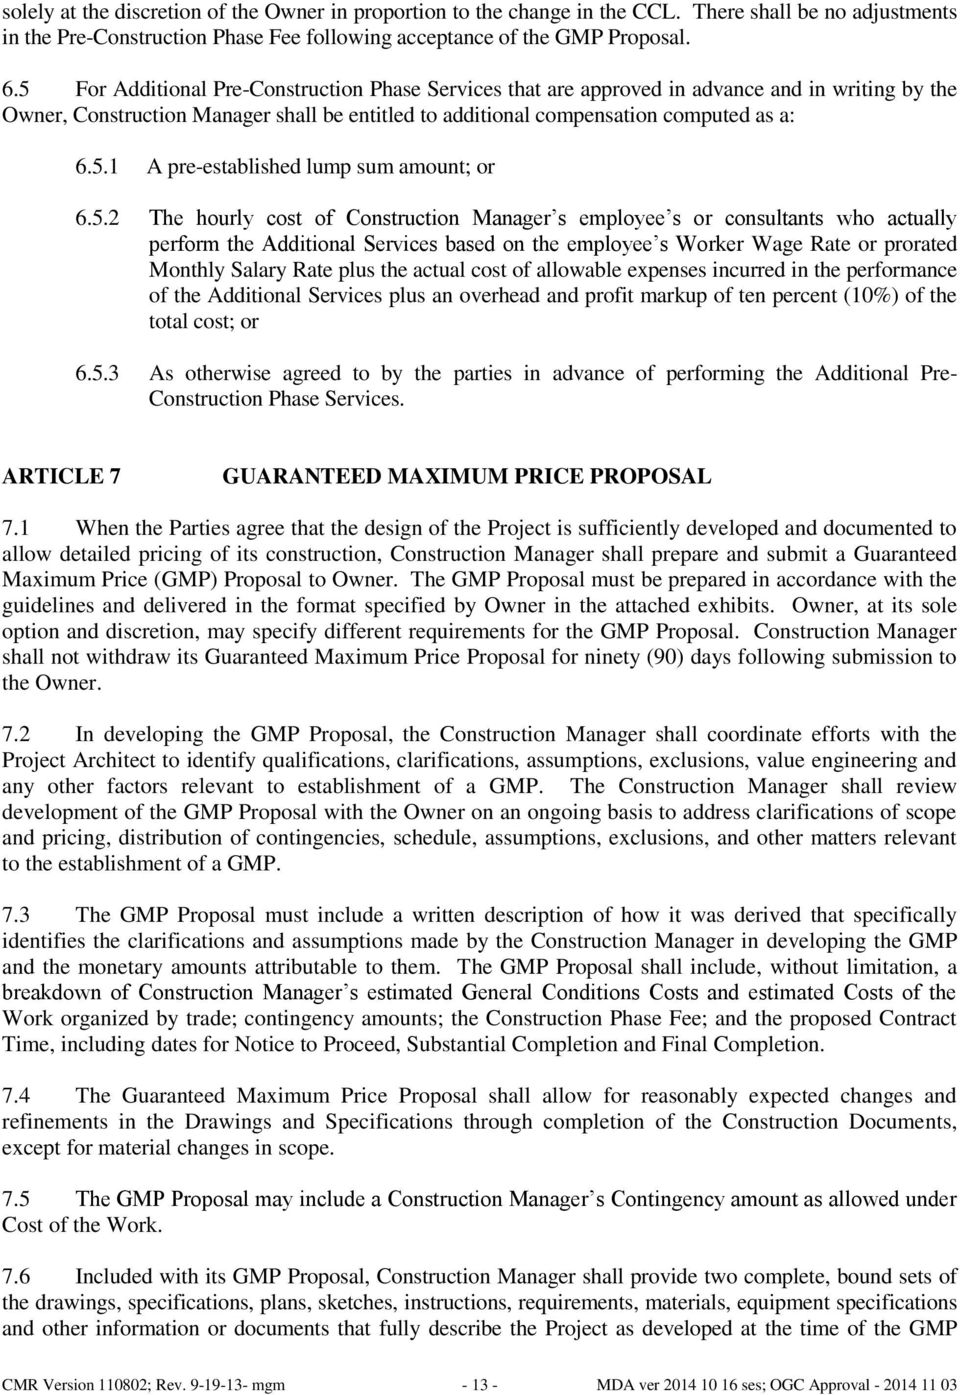 AGREEMENT BETWEEN OWNER AND CONSTRUCTION MANAGER-AT-RISK - PDF